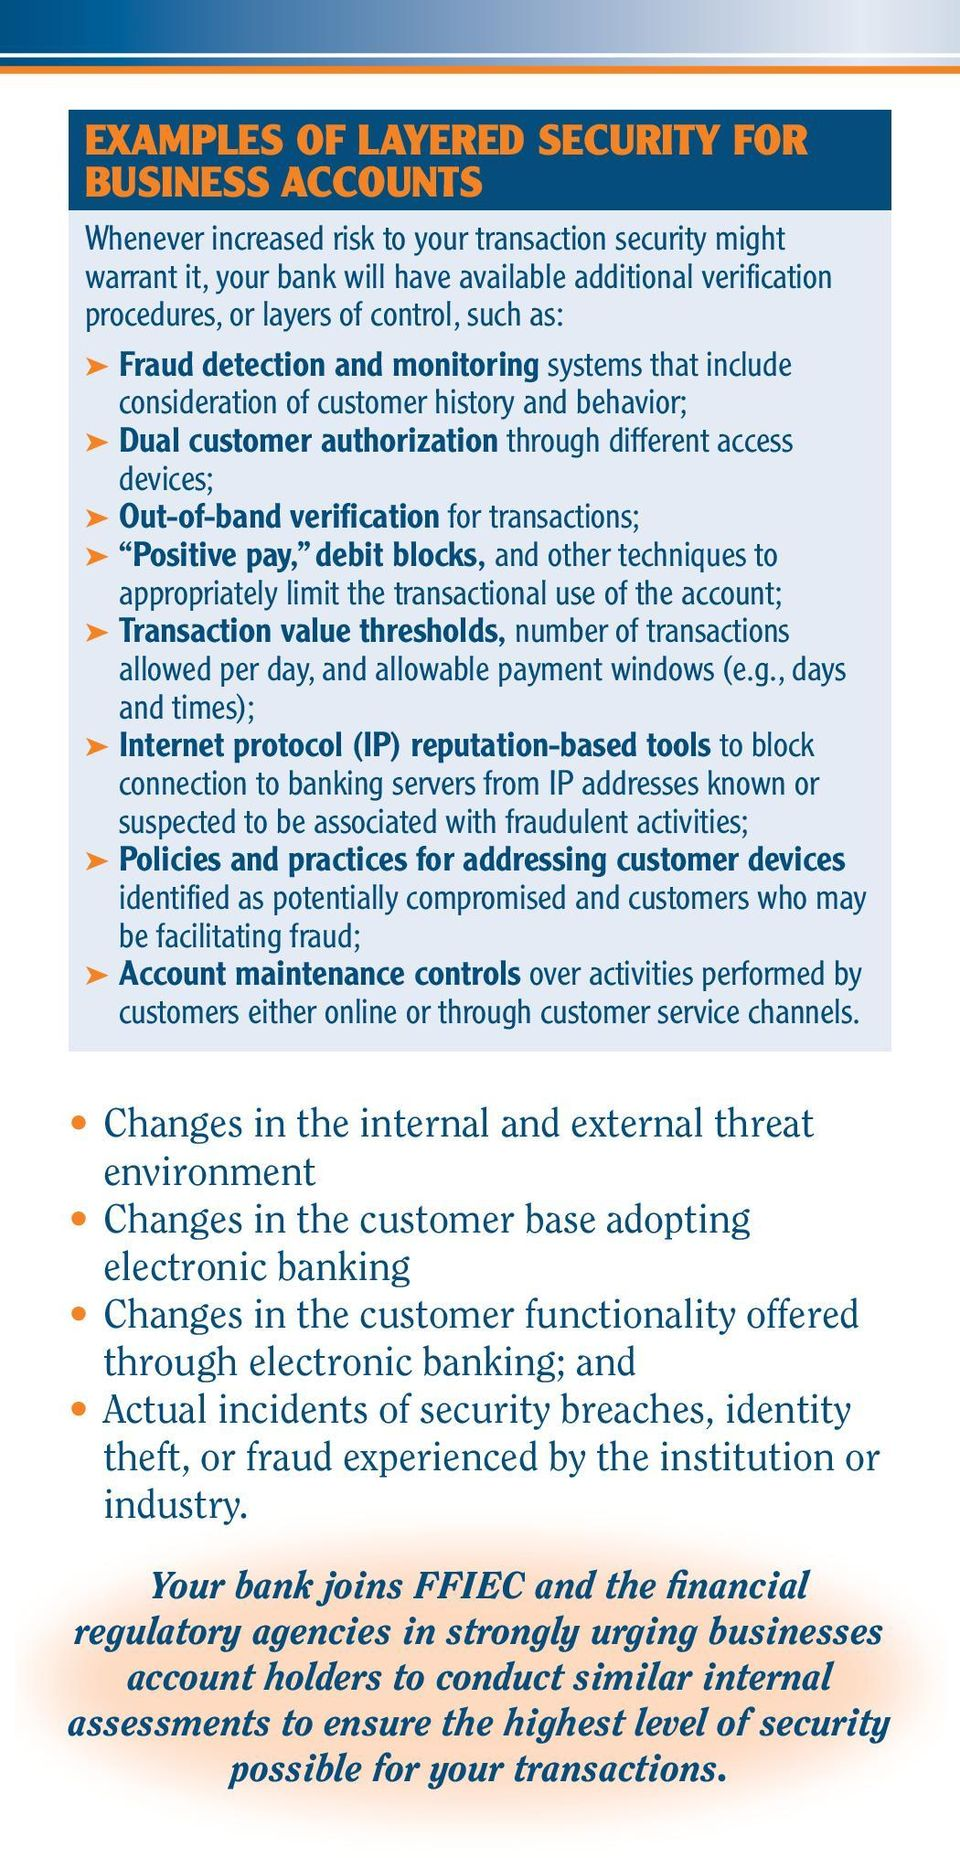 verification for transactions; Positive pay, debit blocks, and other techniques to appropriately limit the transactional use of the account; Transaction value thresholds, number of transactions